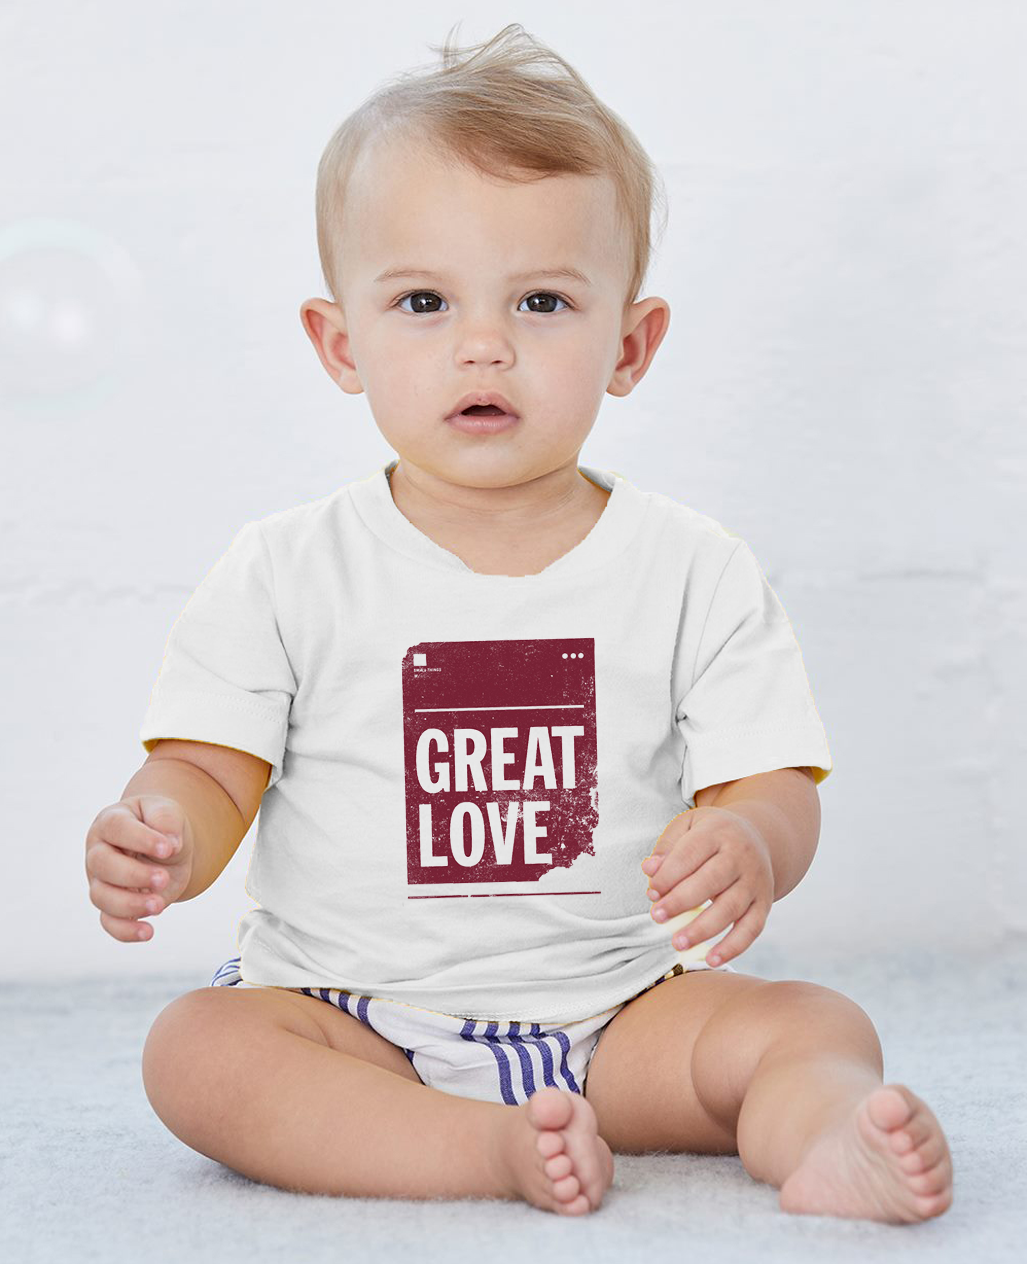 Great Love Baby Cozy Graphic Tee Onesie in White